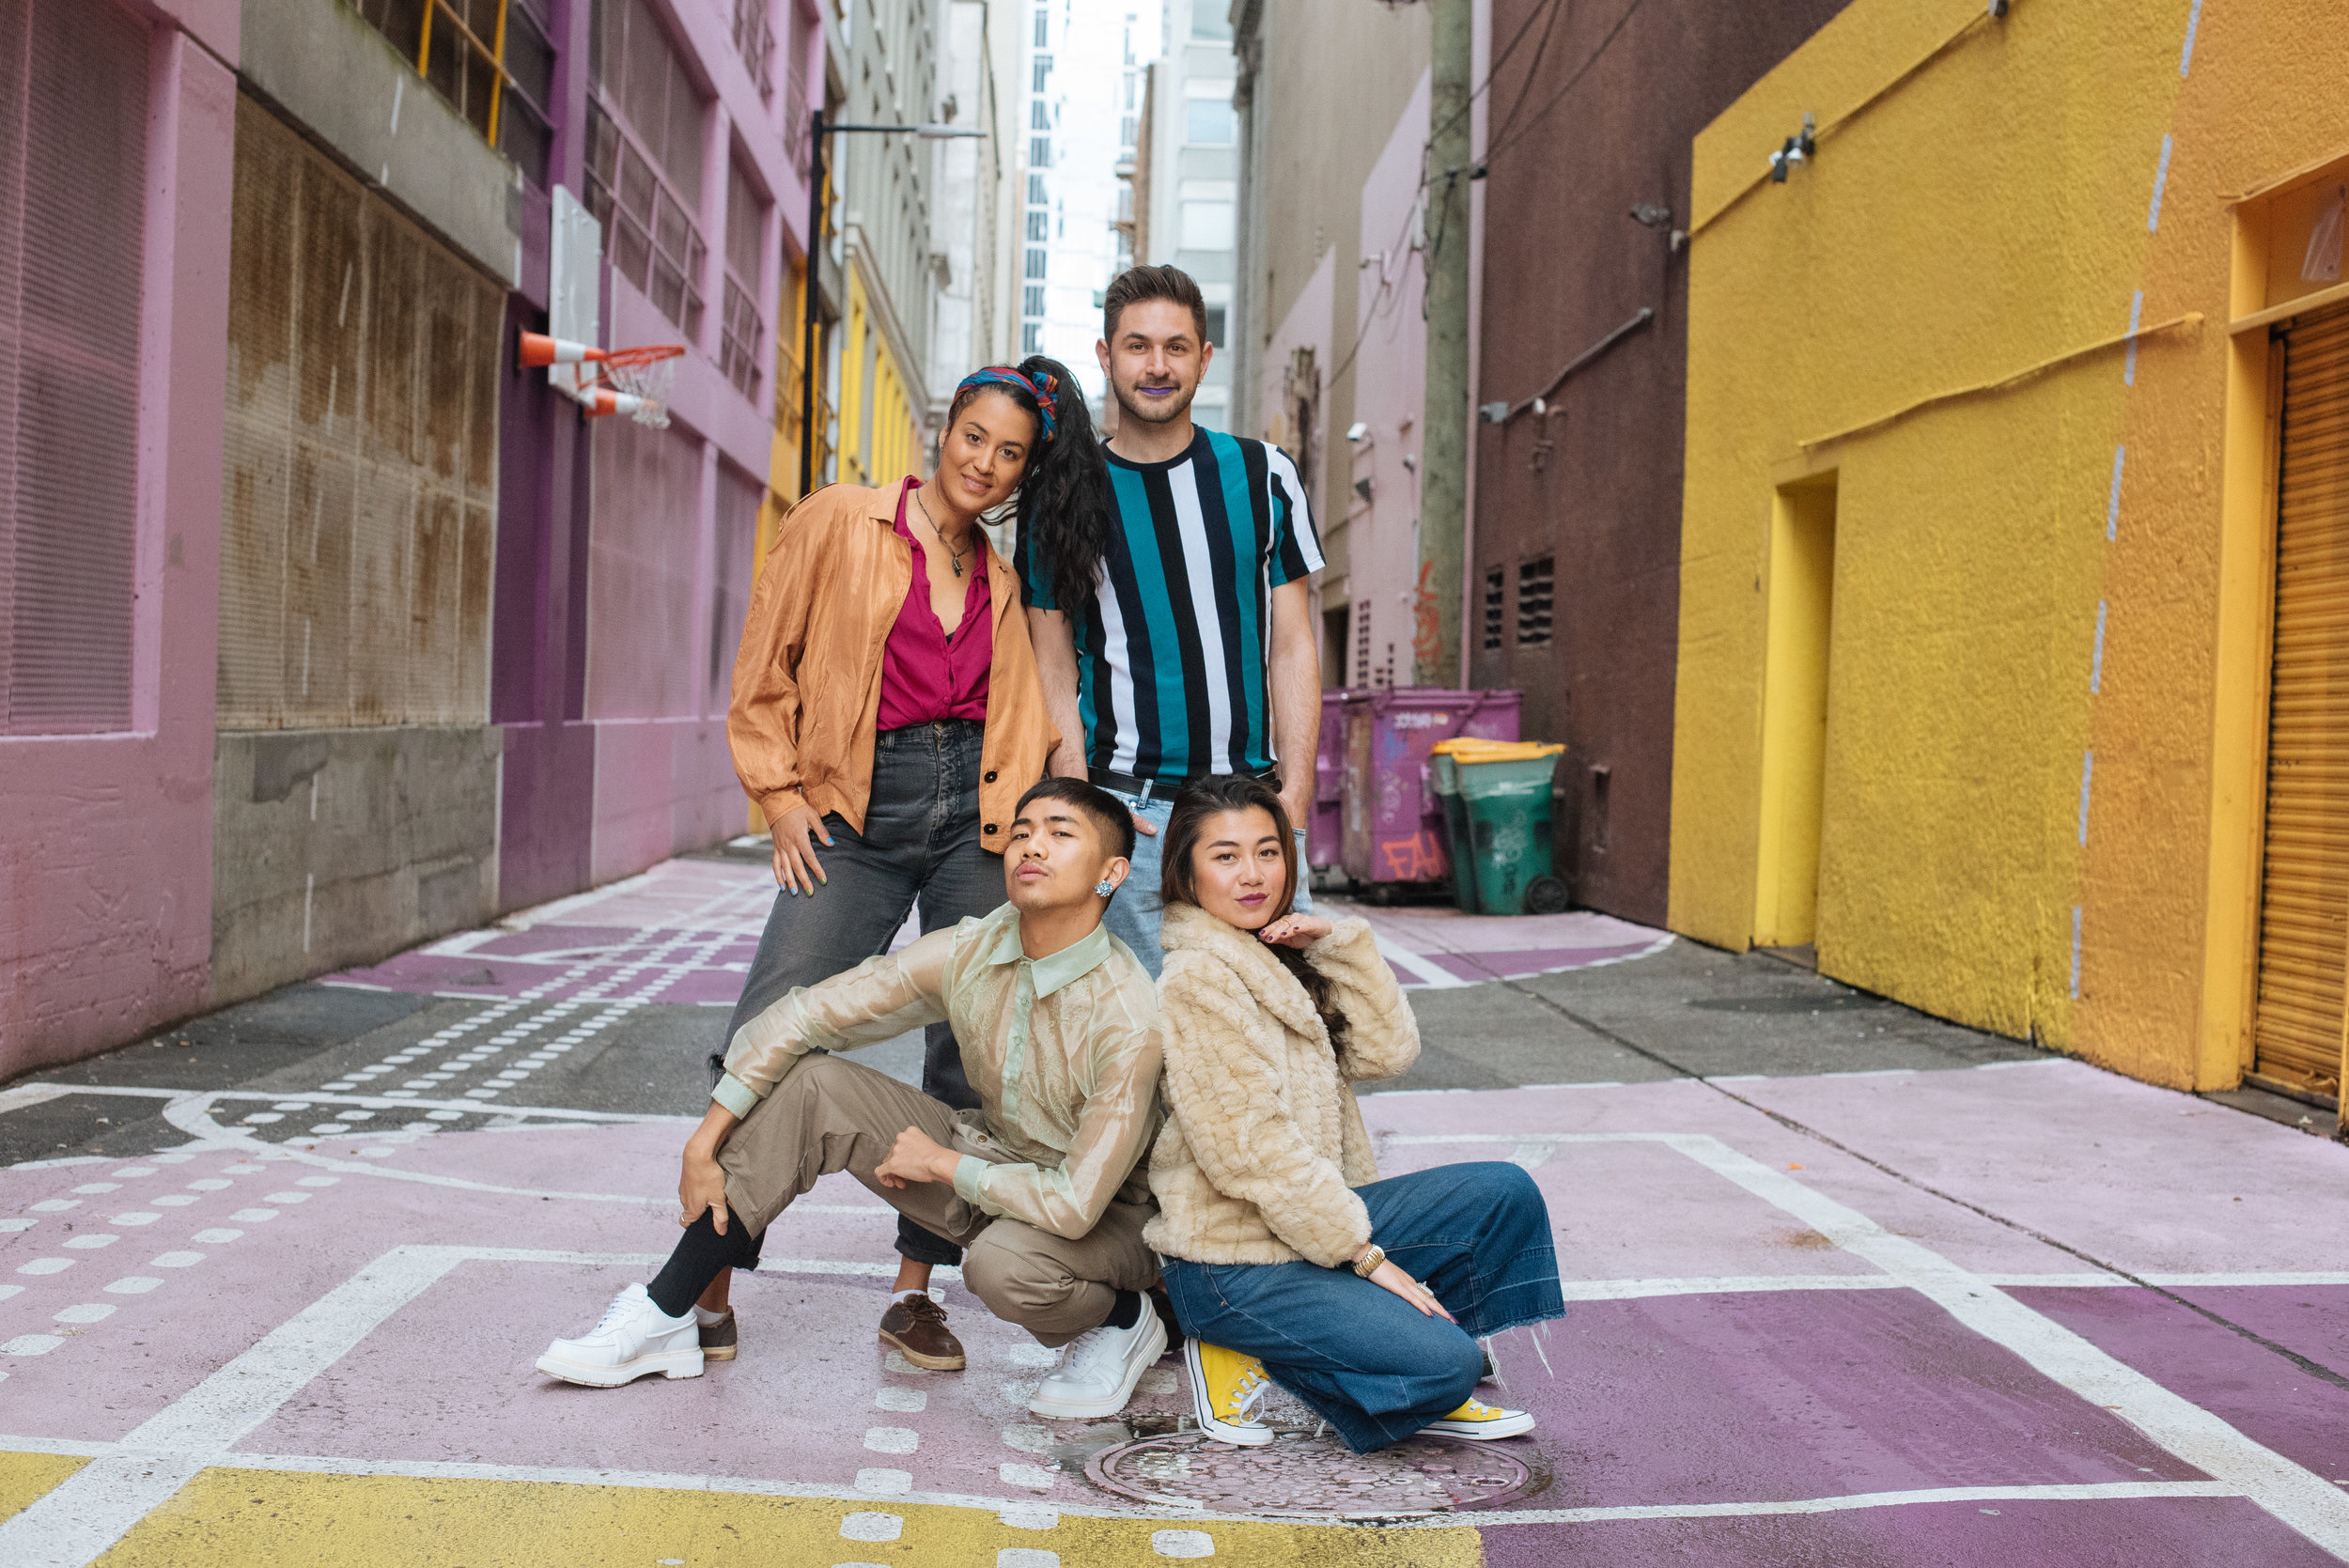 Public Disco Laneway Series curators: Larisa Sanders, Ralph Escamillan, Nick Collinet, and Char Loro photographed by Sam Steele.